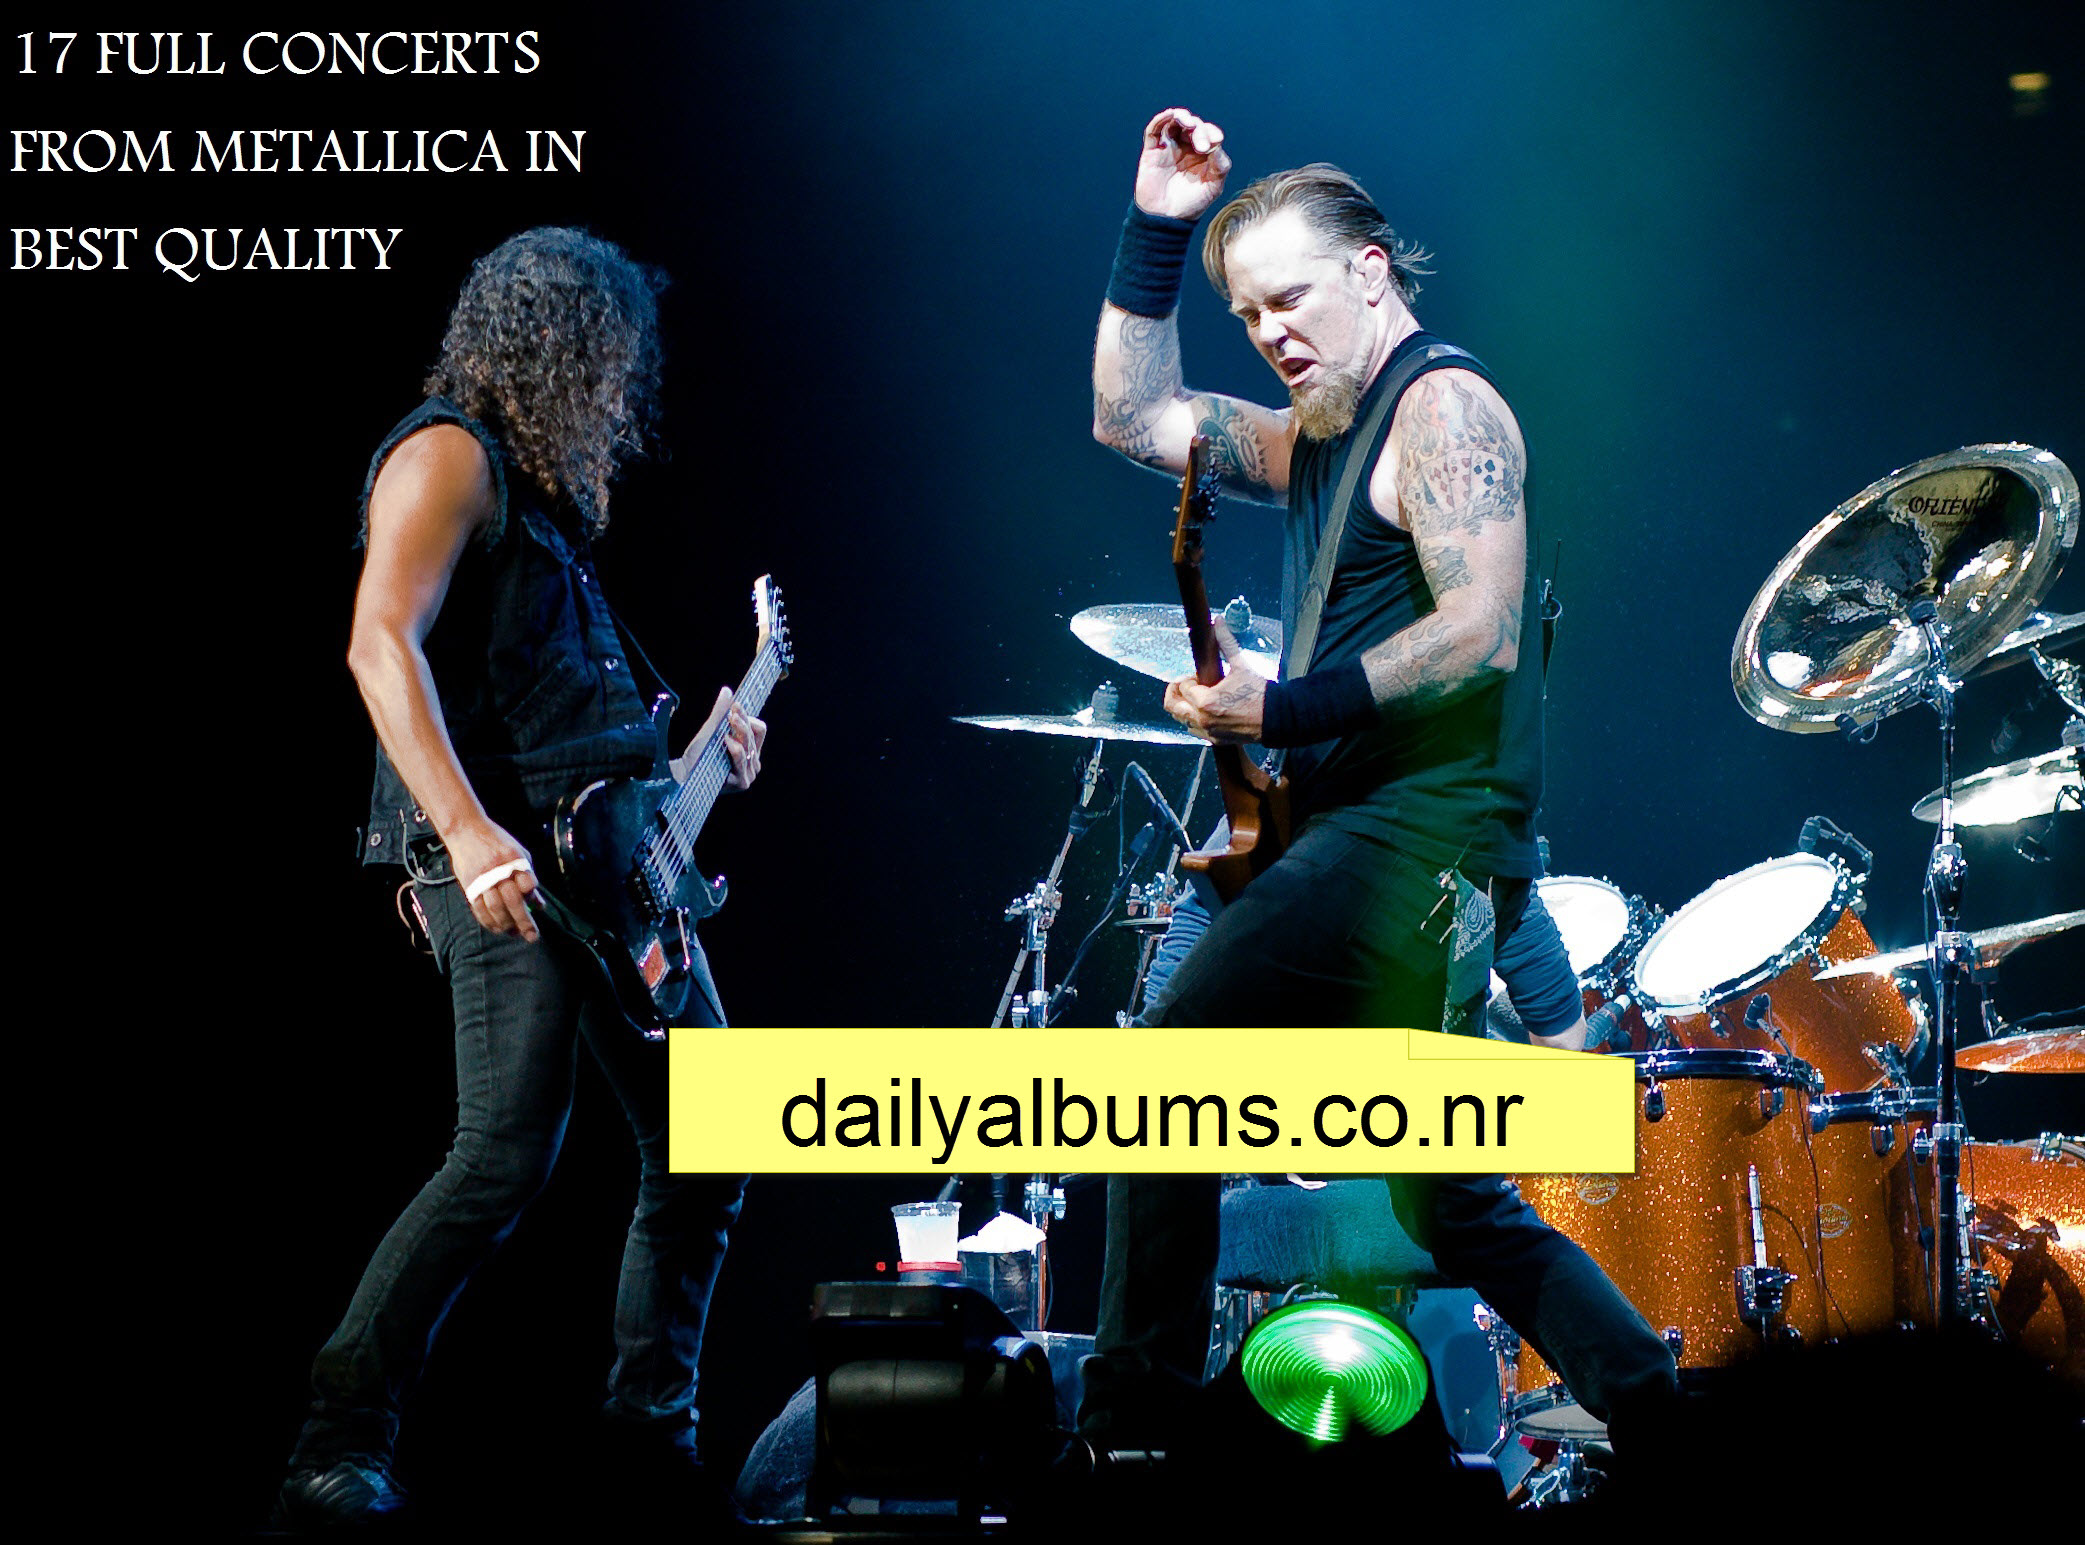 http://rozup.ir/up/dailyalbums/okay%20Metallica%2017%20FULL%20CONCERTS%20(DAILYALBUMS.CO.NR).jpg